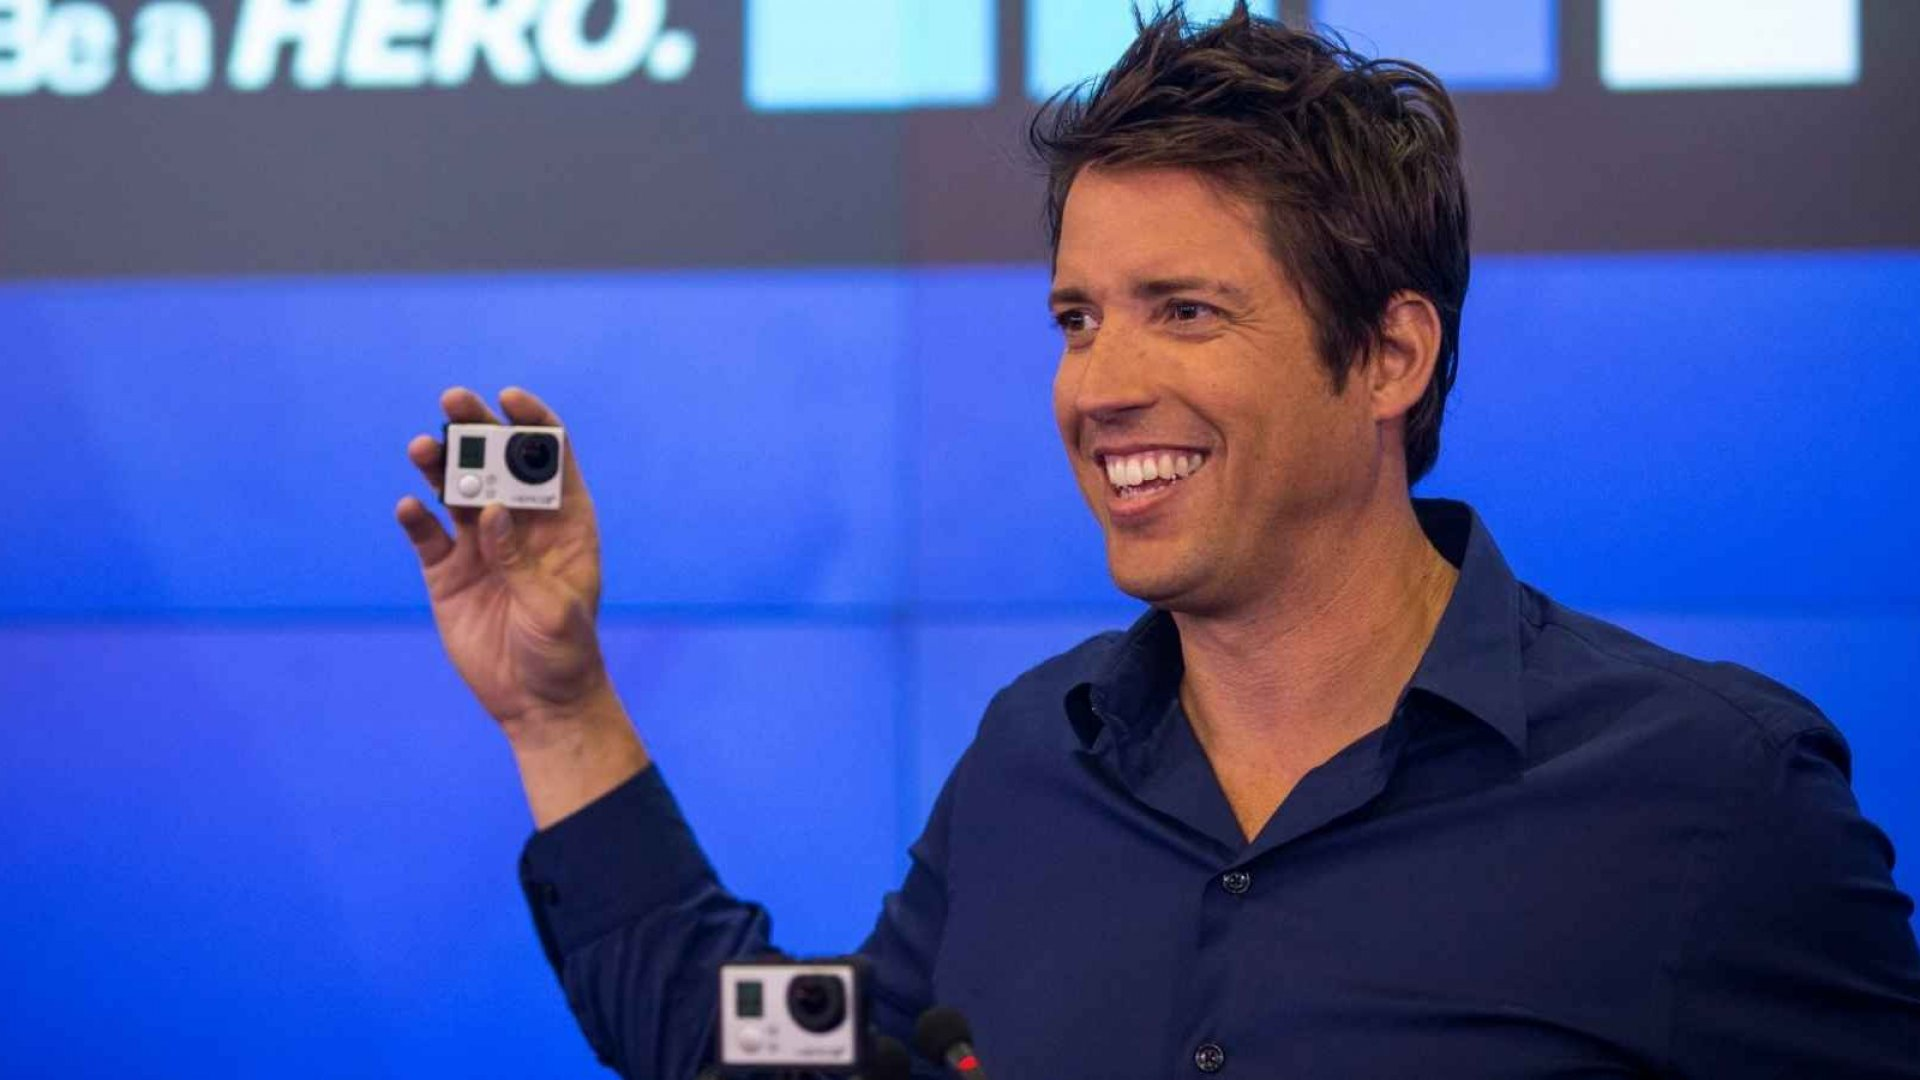 GoPro Reports Lower Than Expected Quarterly Losses